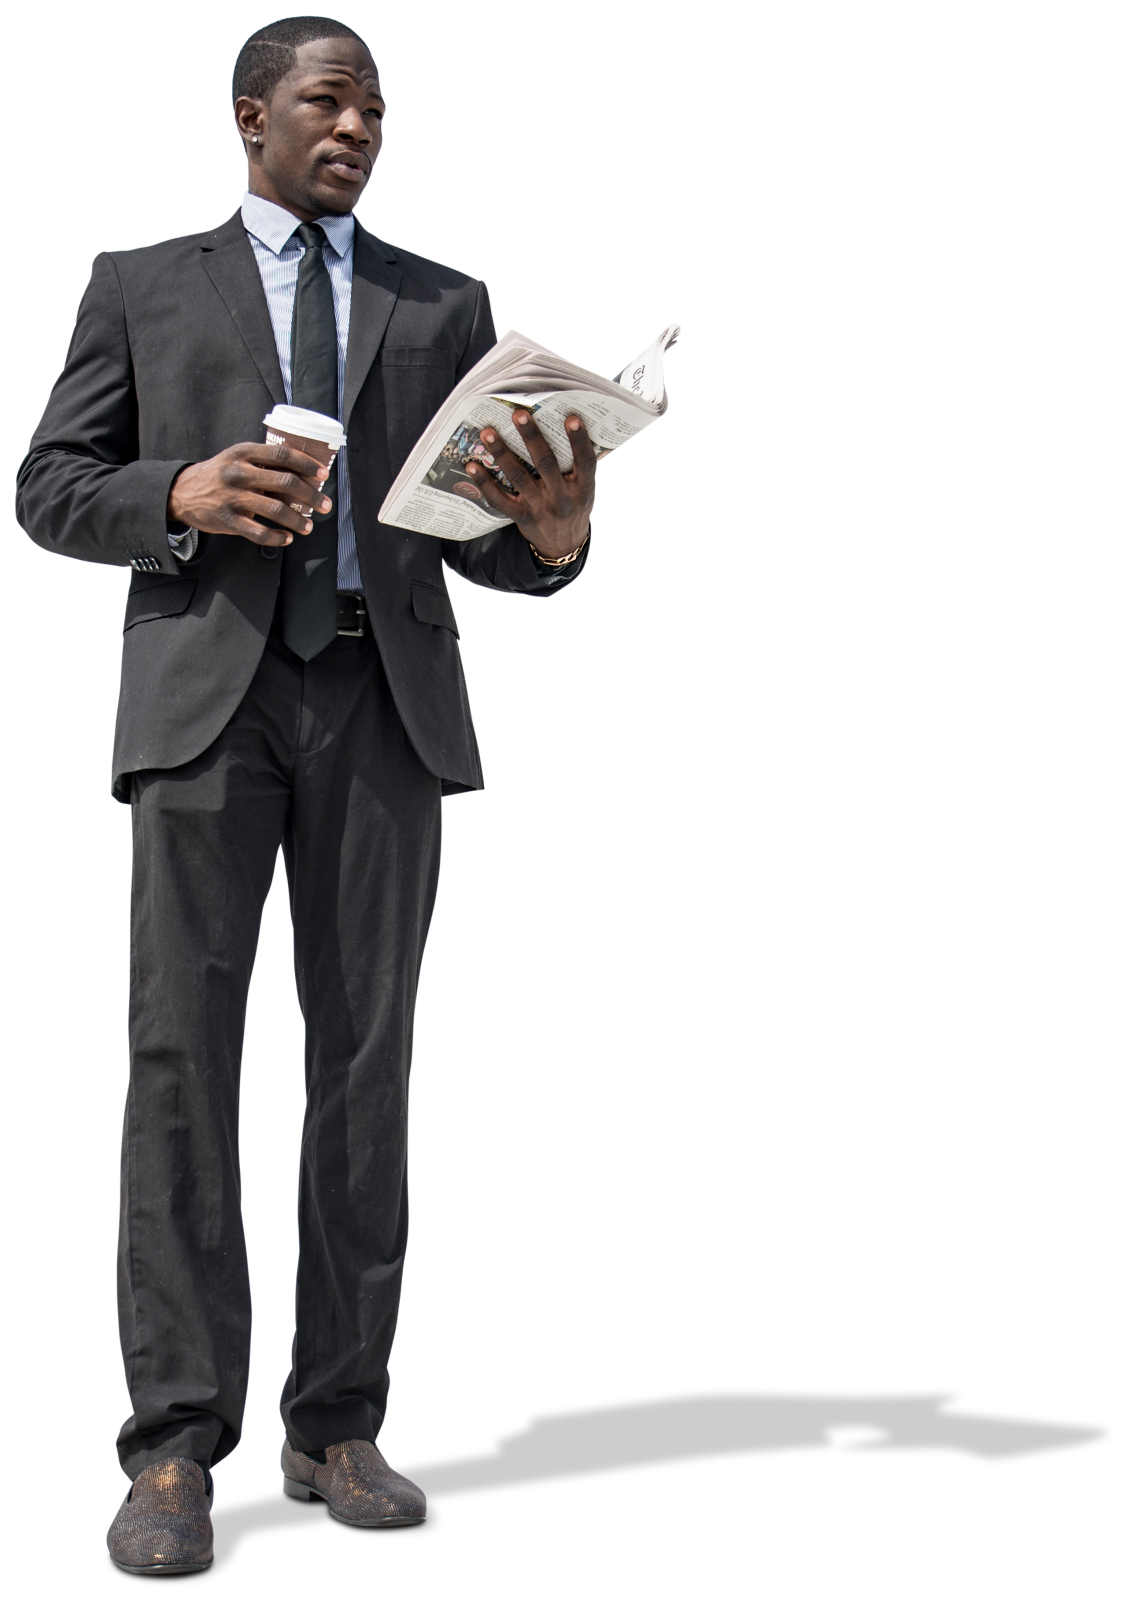 Office with coffee and. African american businessman png image free